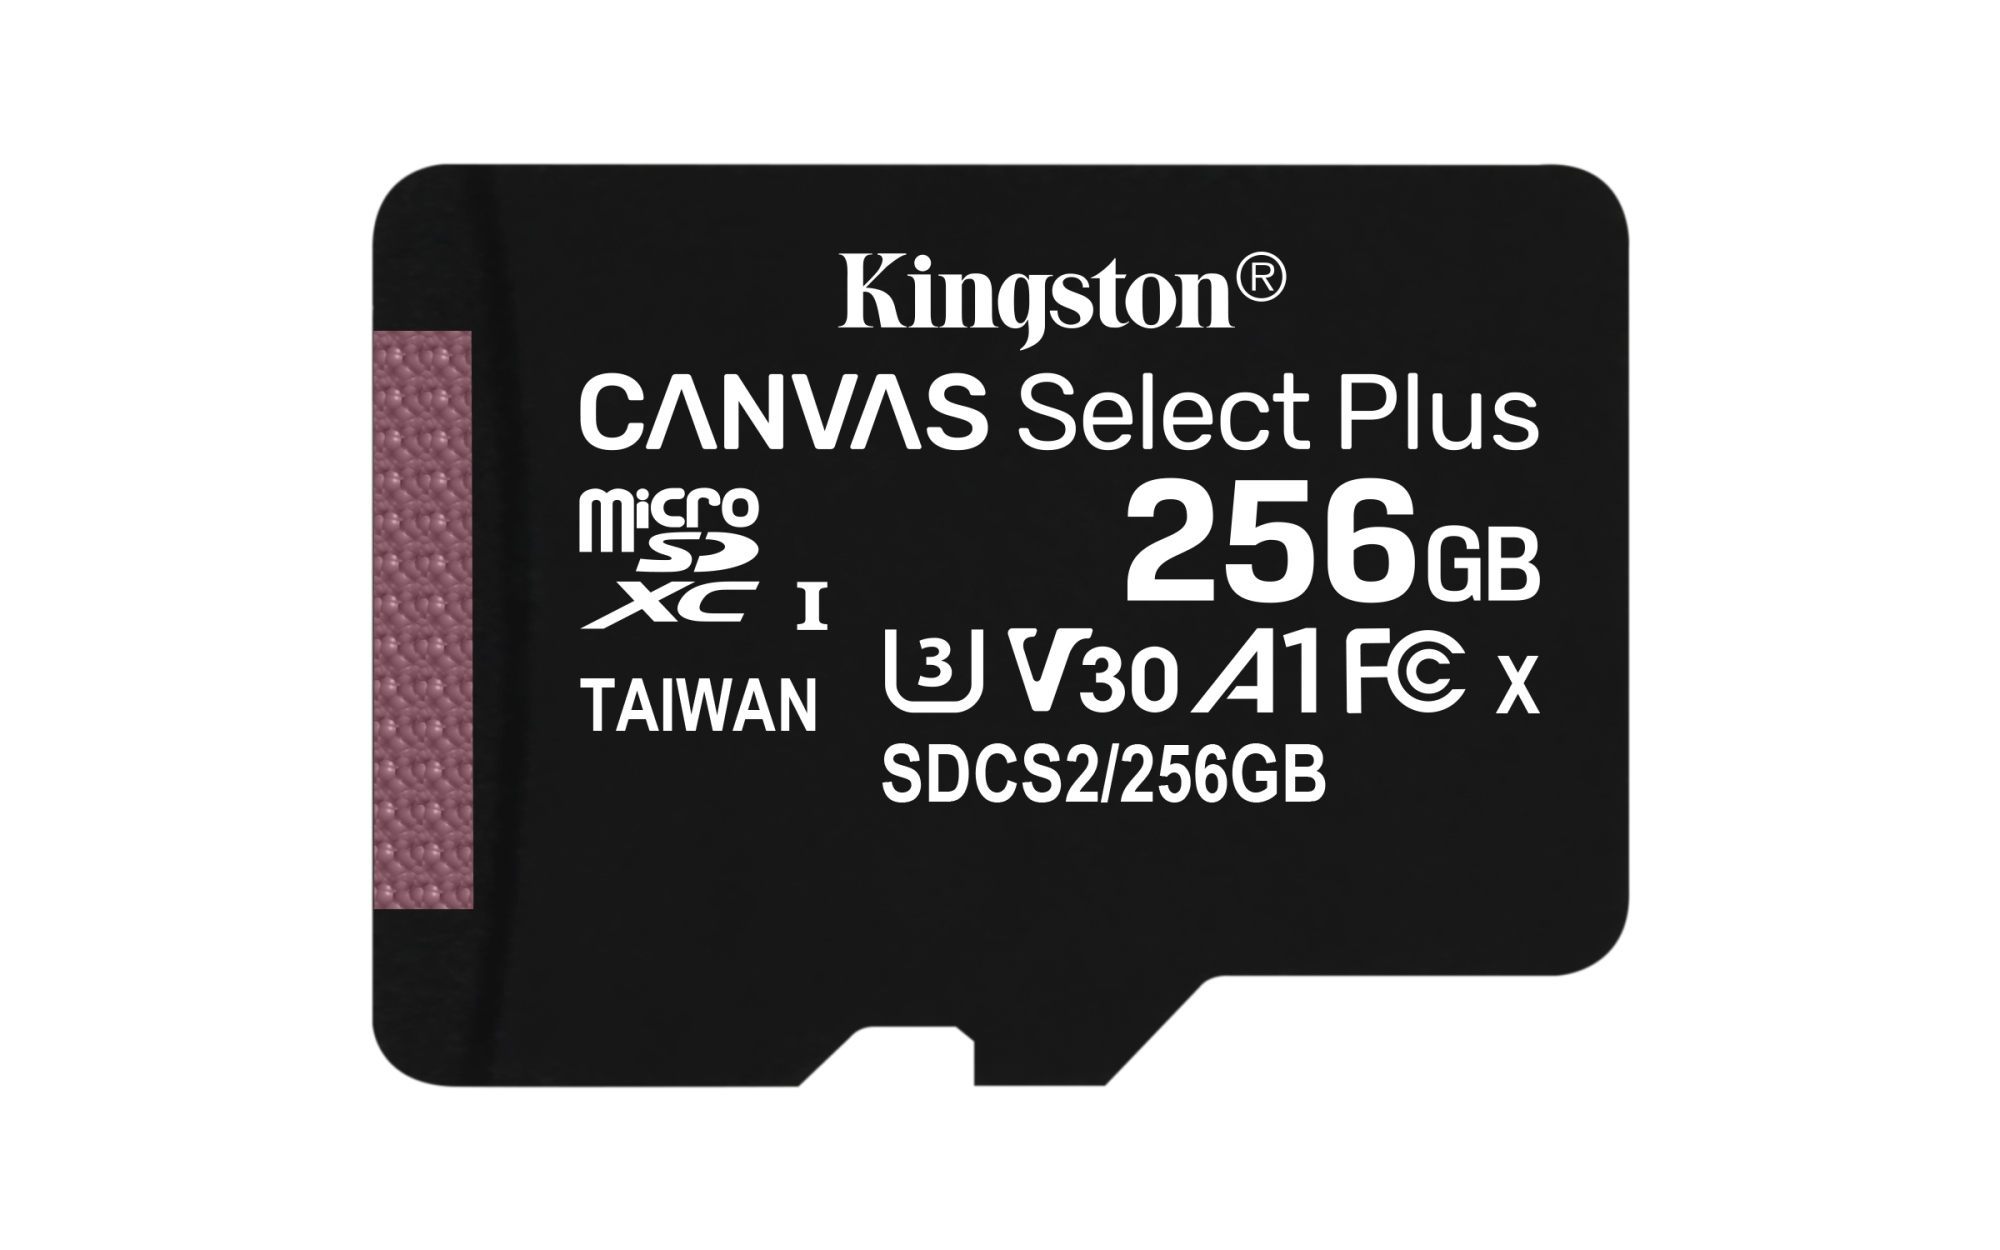 CANVAS SELECT PLUS MEMORIA FLASH 256 GB MICROSDXC CLASE 10 UHS-I